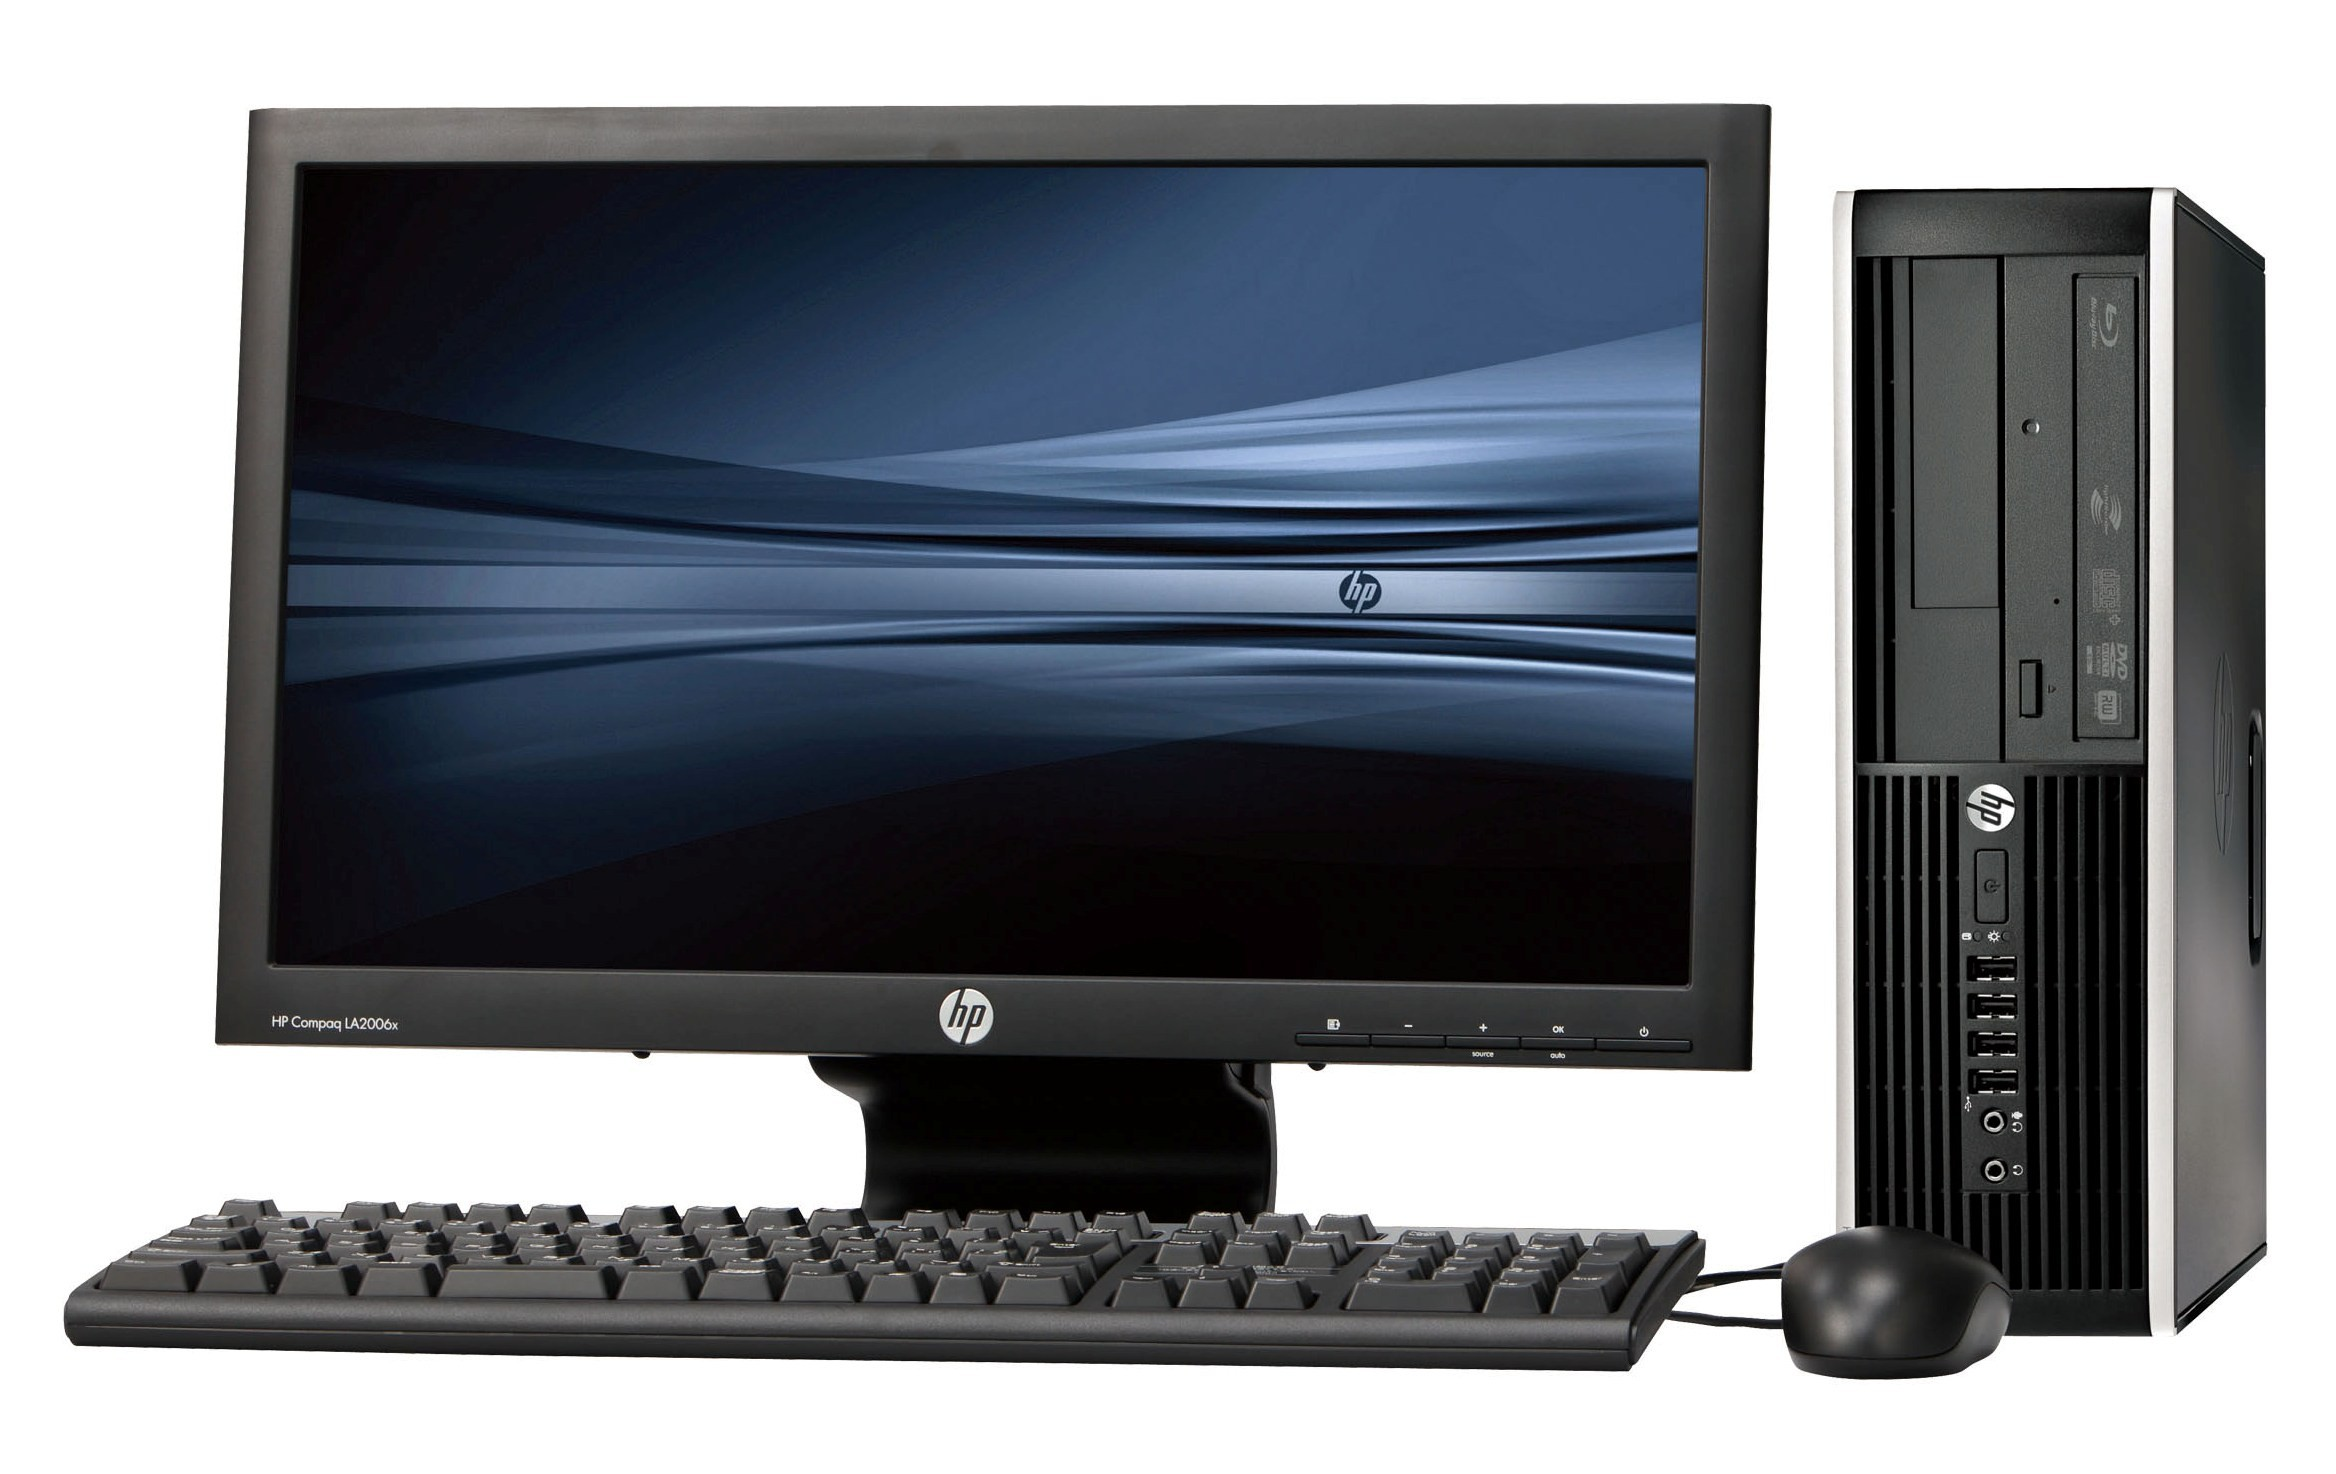 Refurbished Hp Compaq 8200 Elite Core I3 2nd Generation